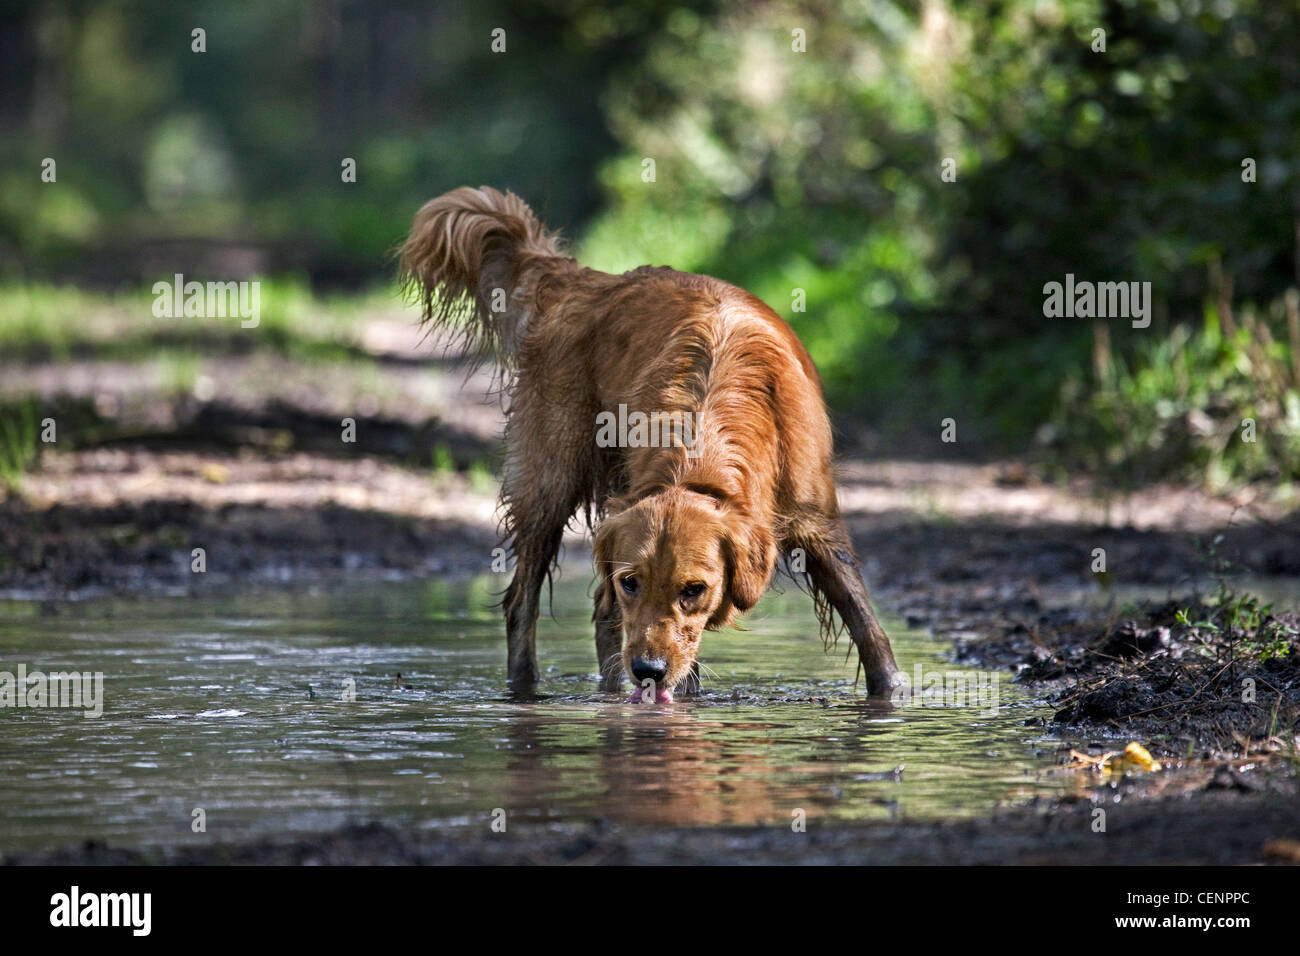 Thirsty Golden retriever dog drinking water from puddle on forest track, Belgium - Stock Image